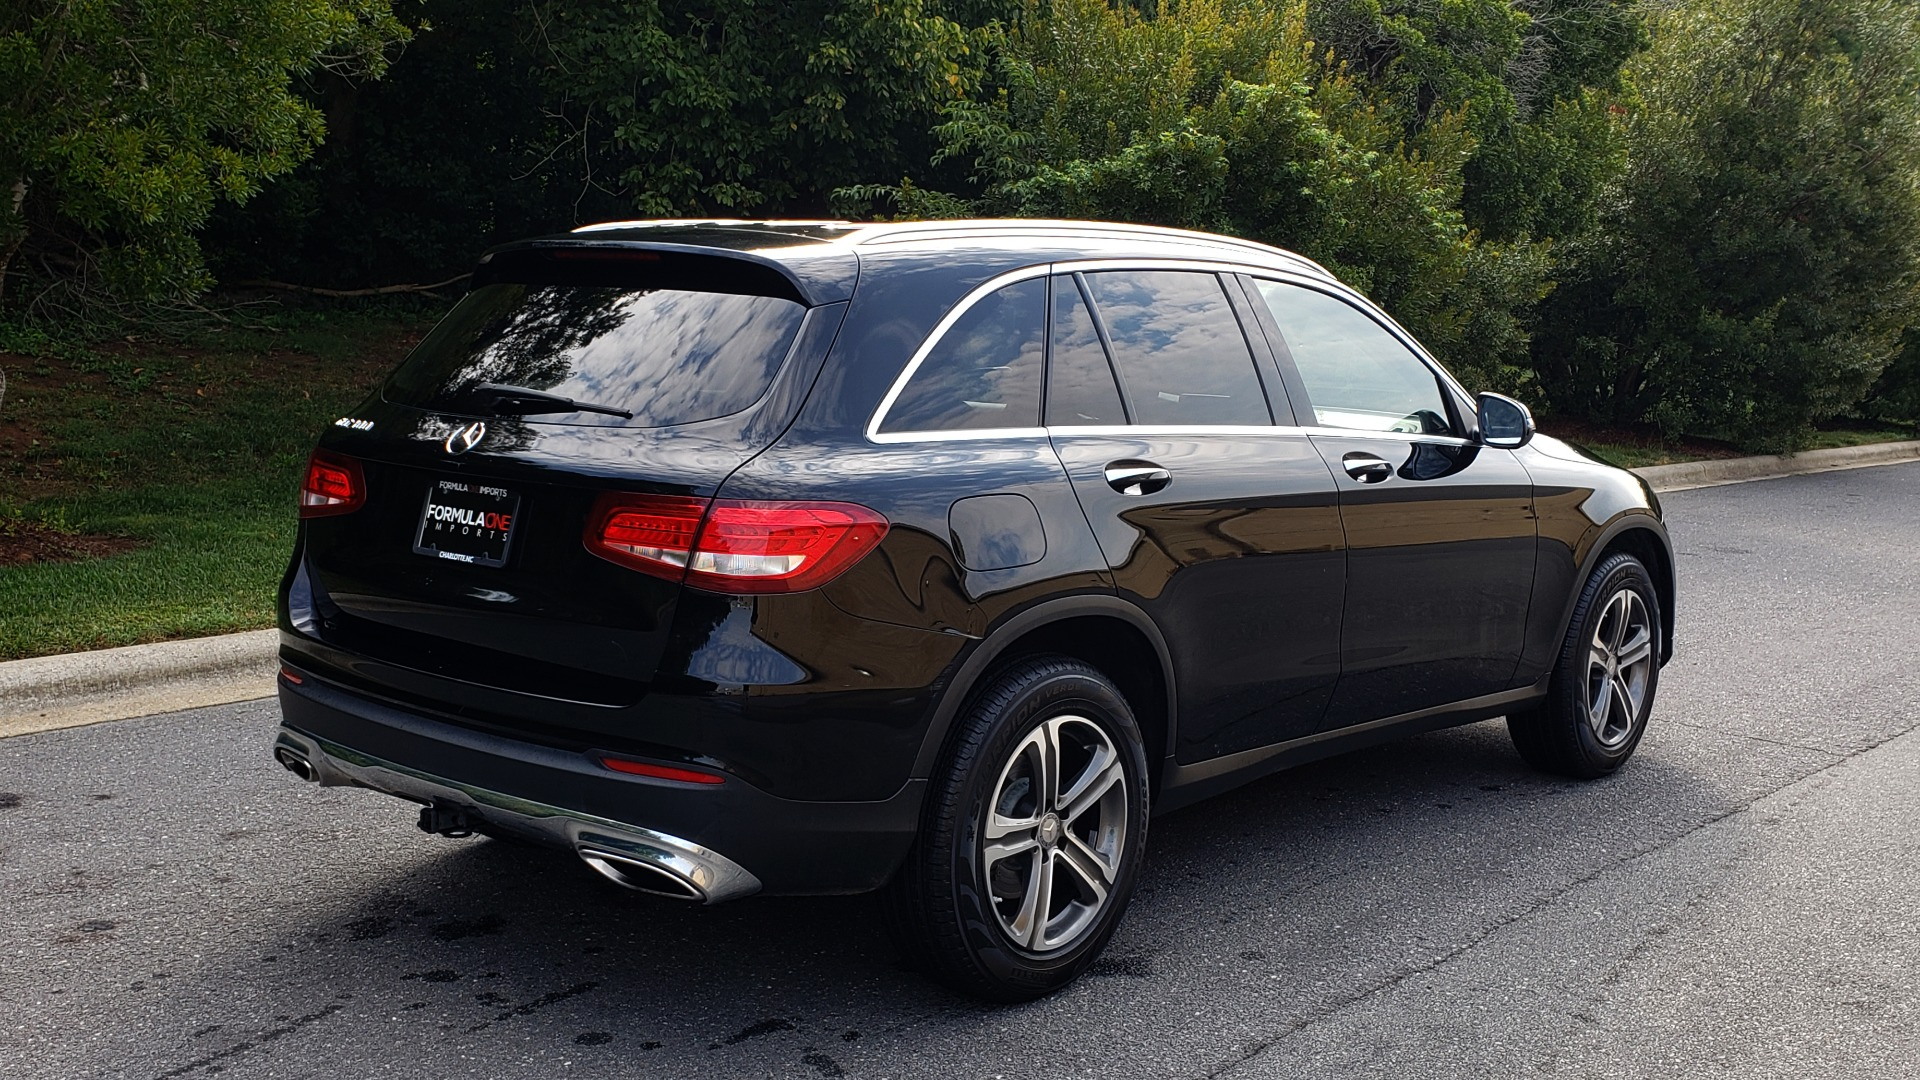 Used 2016 Mercedes-Benz GLC 300 / PANO-ROOF / HEATED SEATS / REARVIEW / NEW TIRES for sale Sold at Formula Imports in Charlotte NC 28227 6